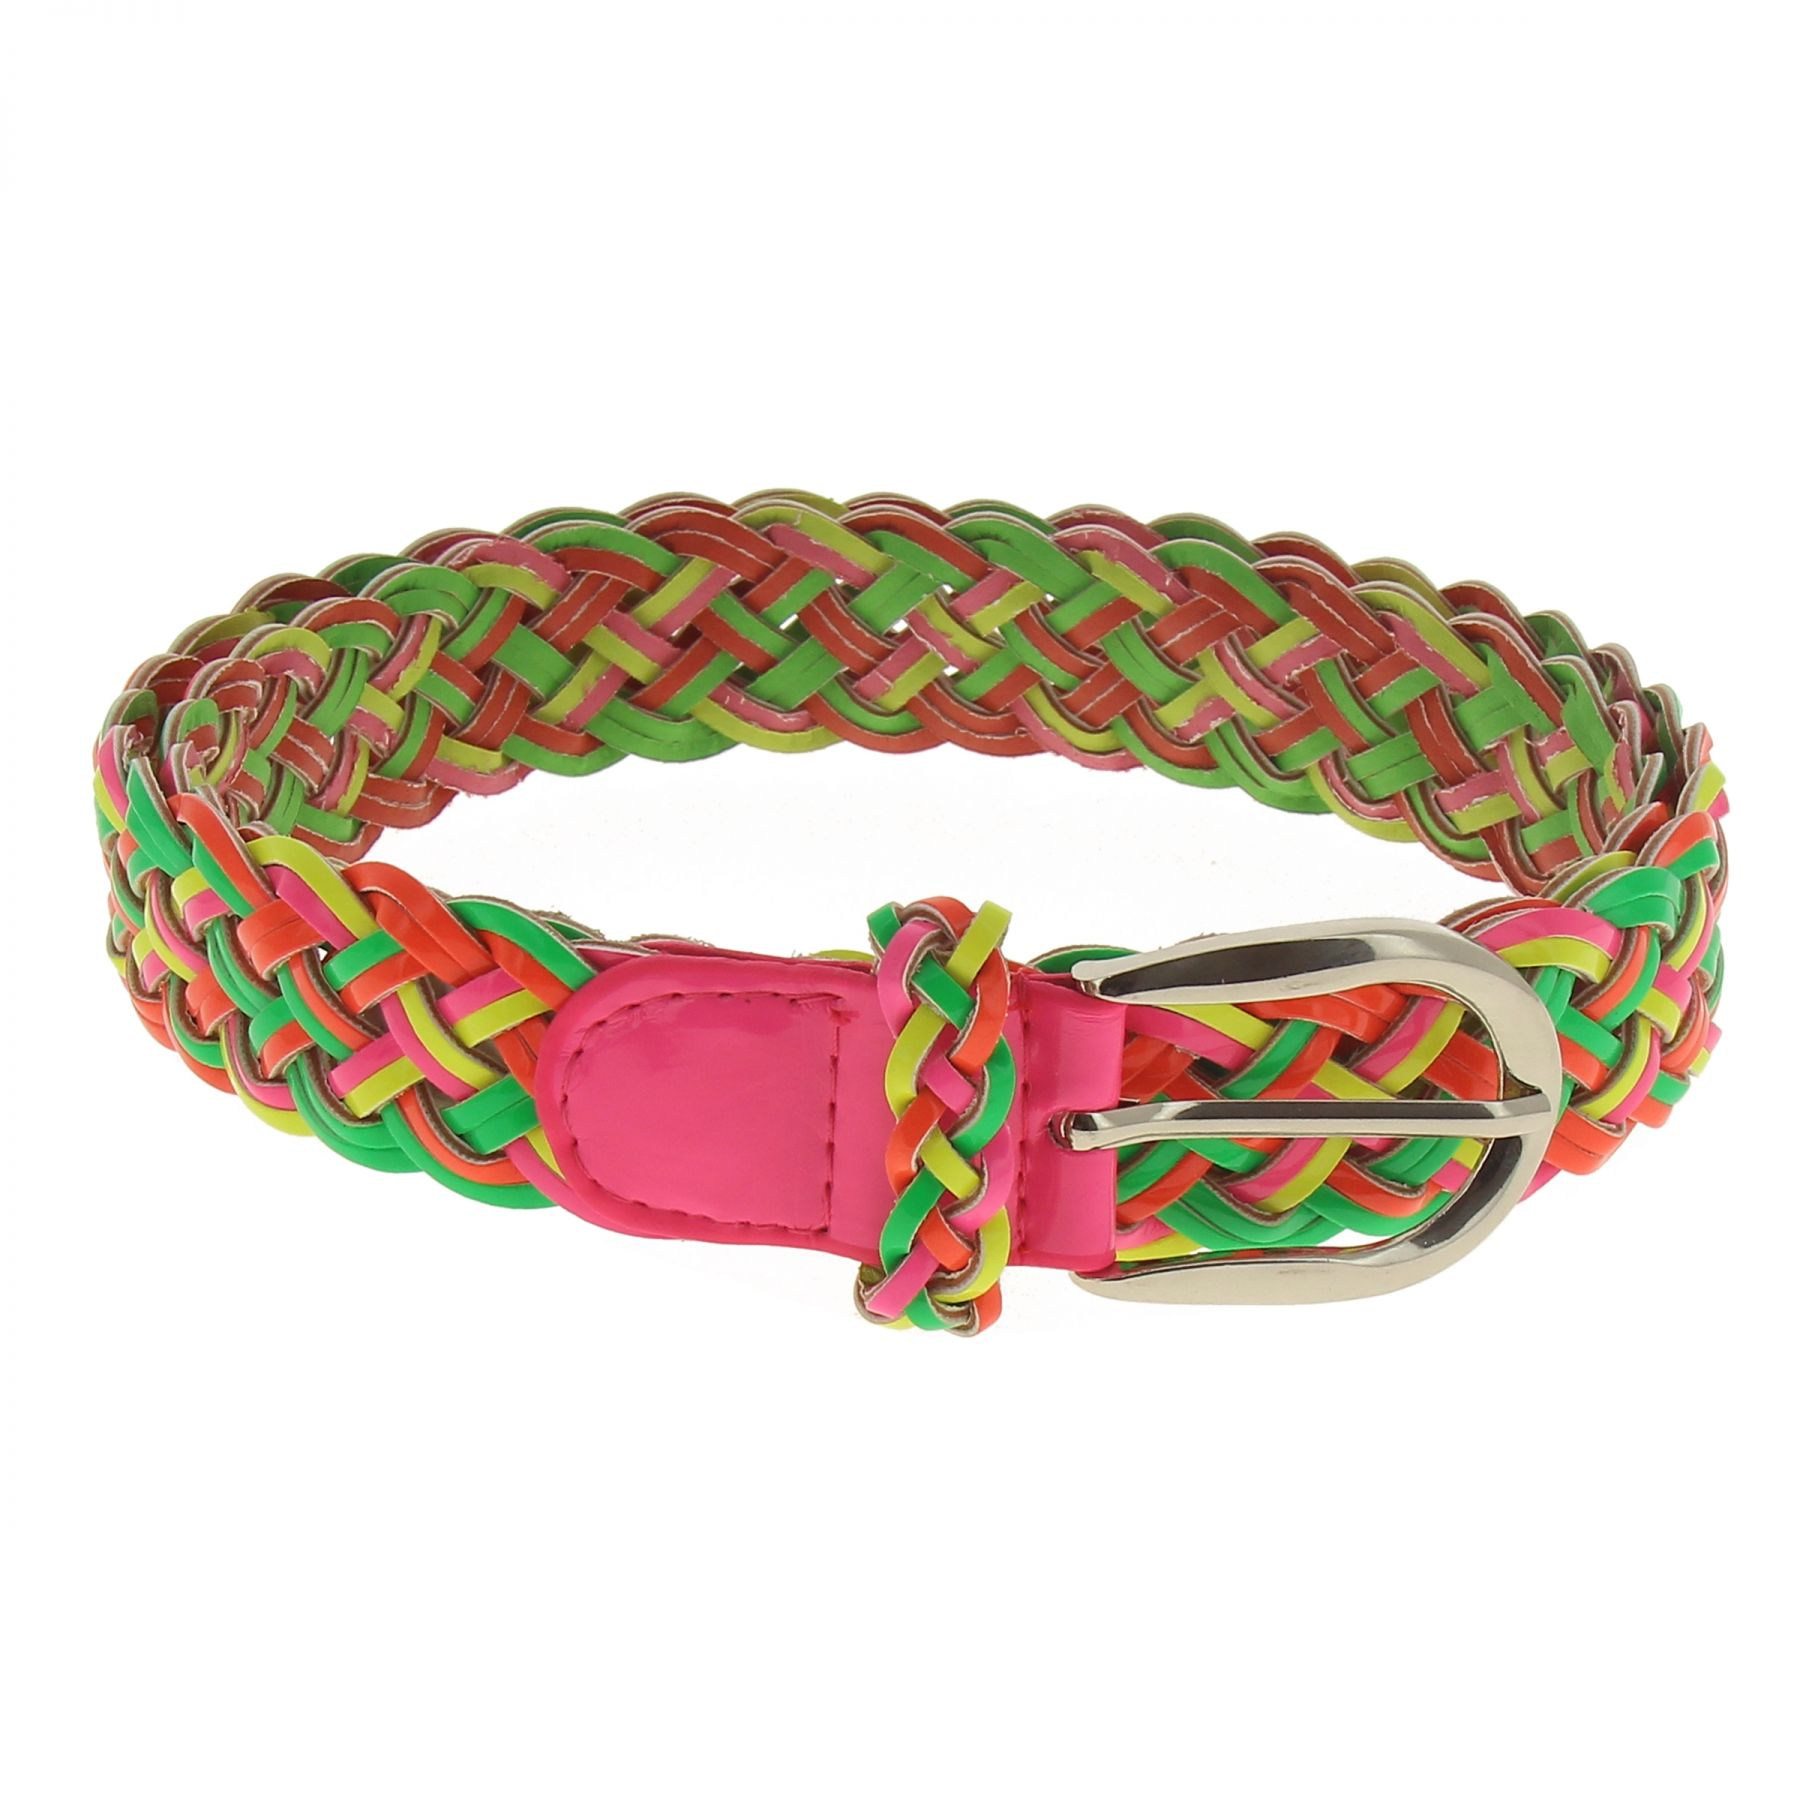 9b60ceb61eaa 4 cm braided belt, ADRIJANA